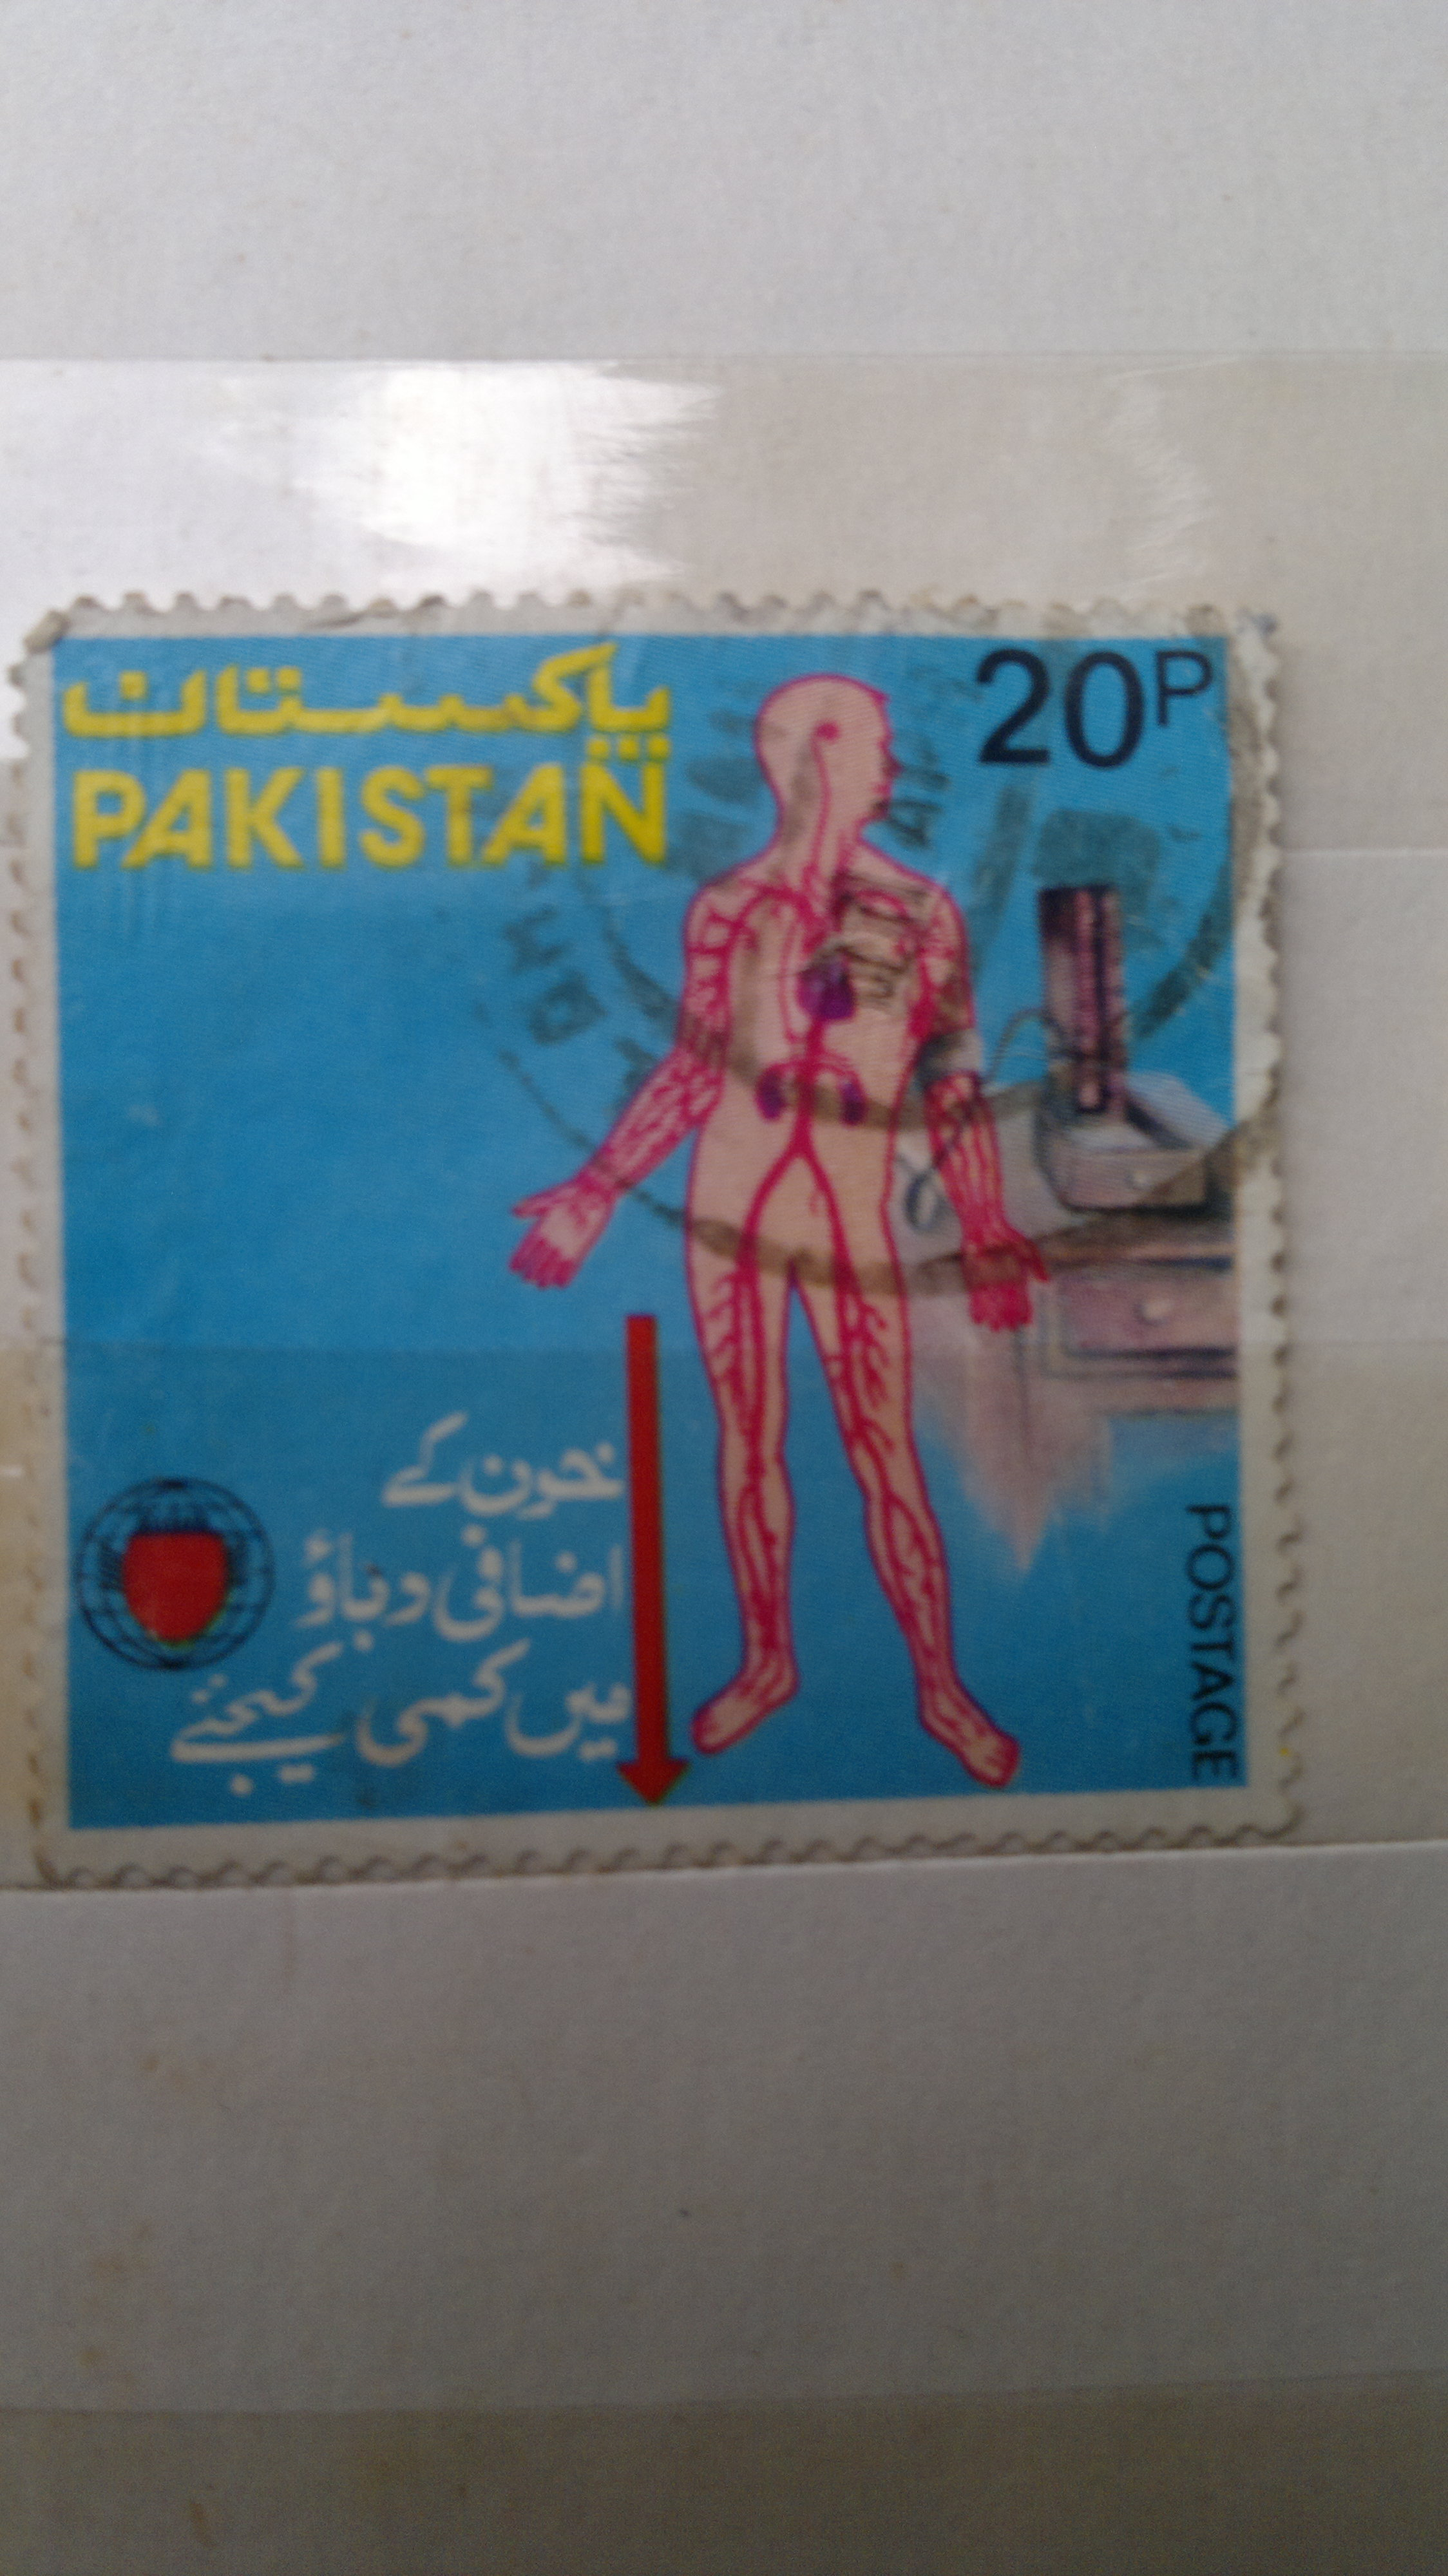 public service message on a stamp